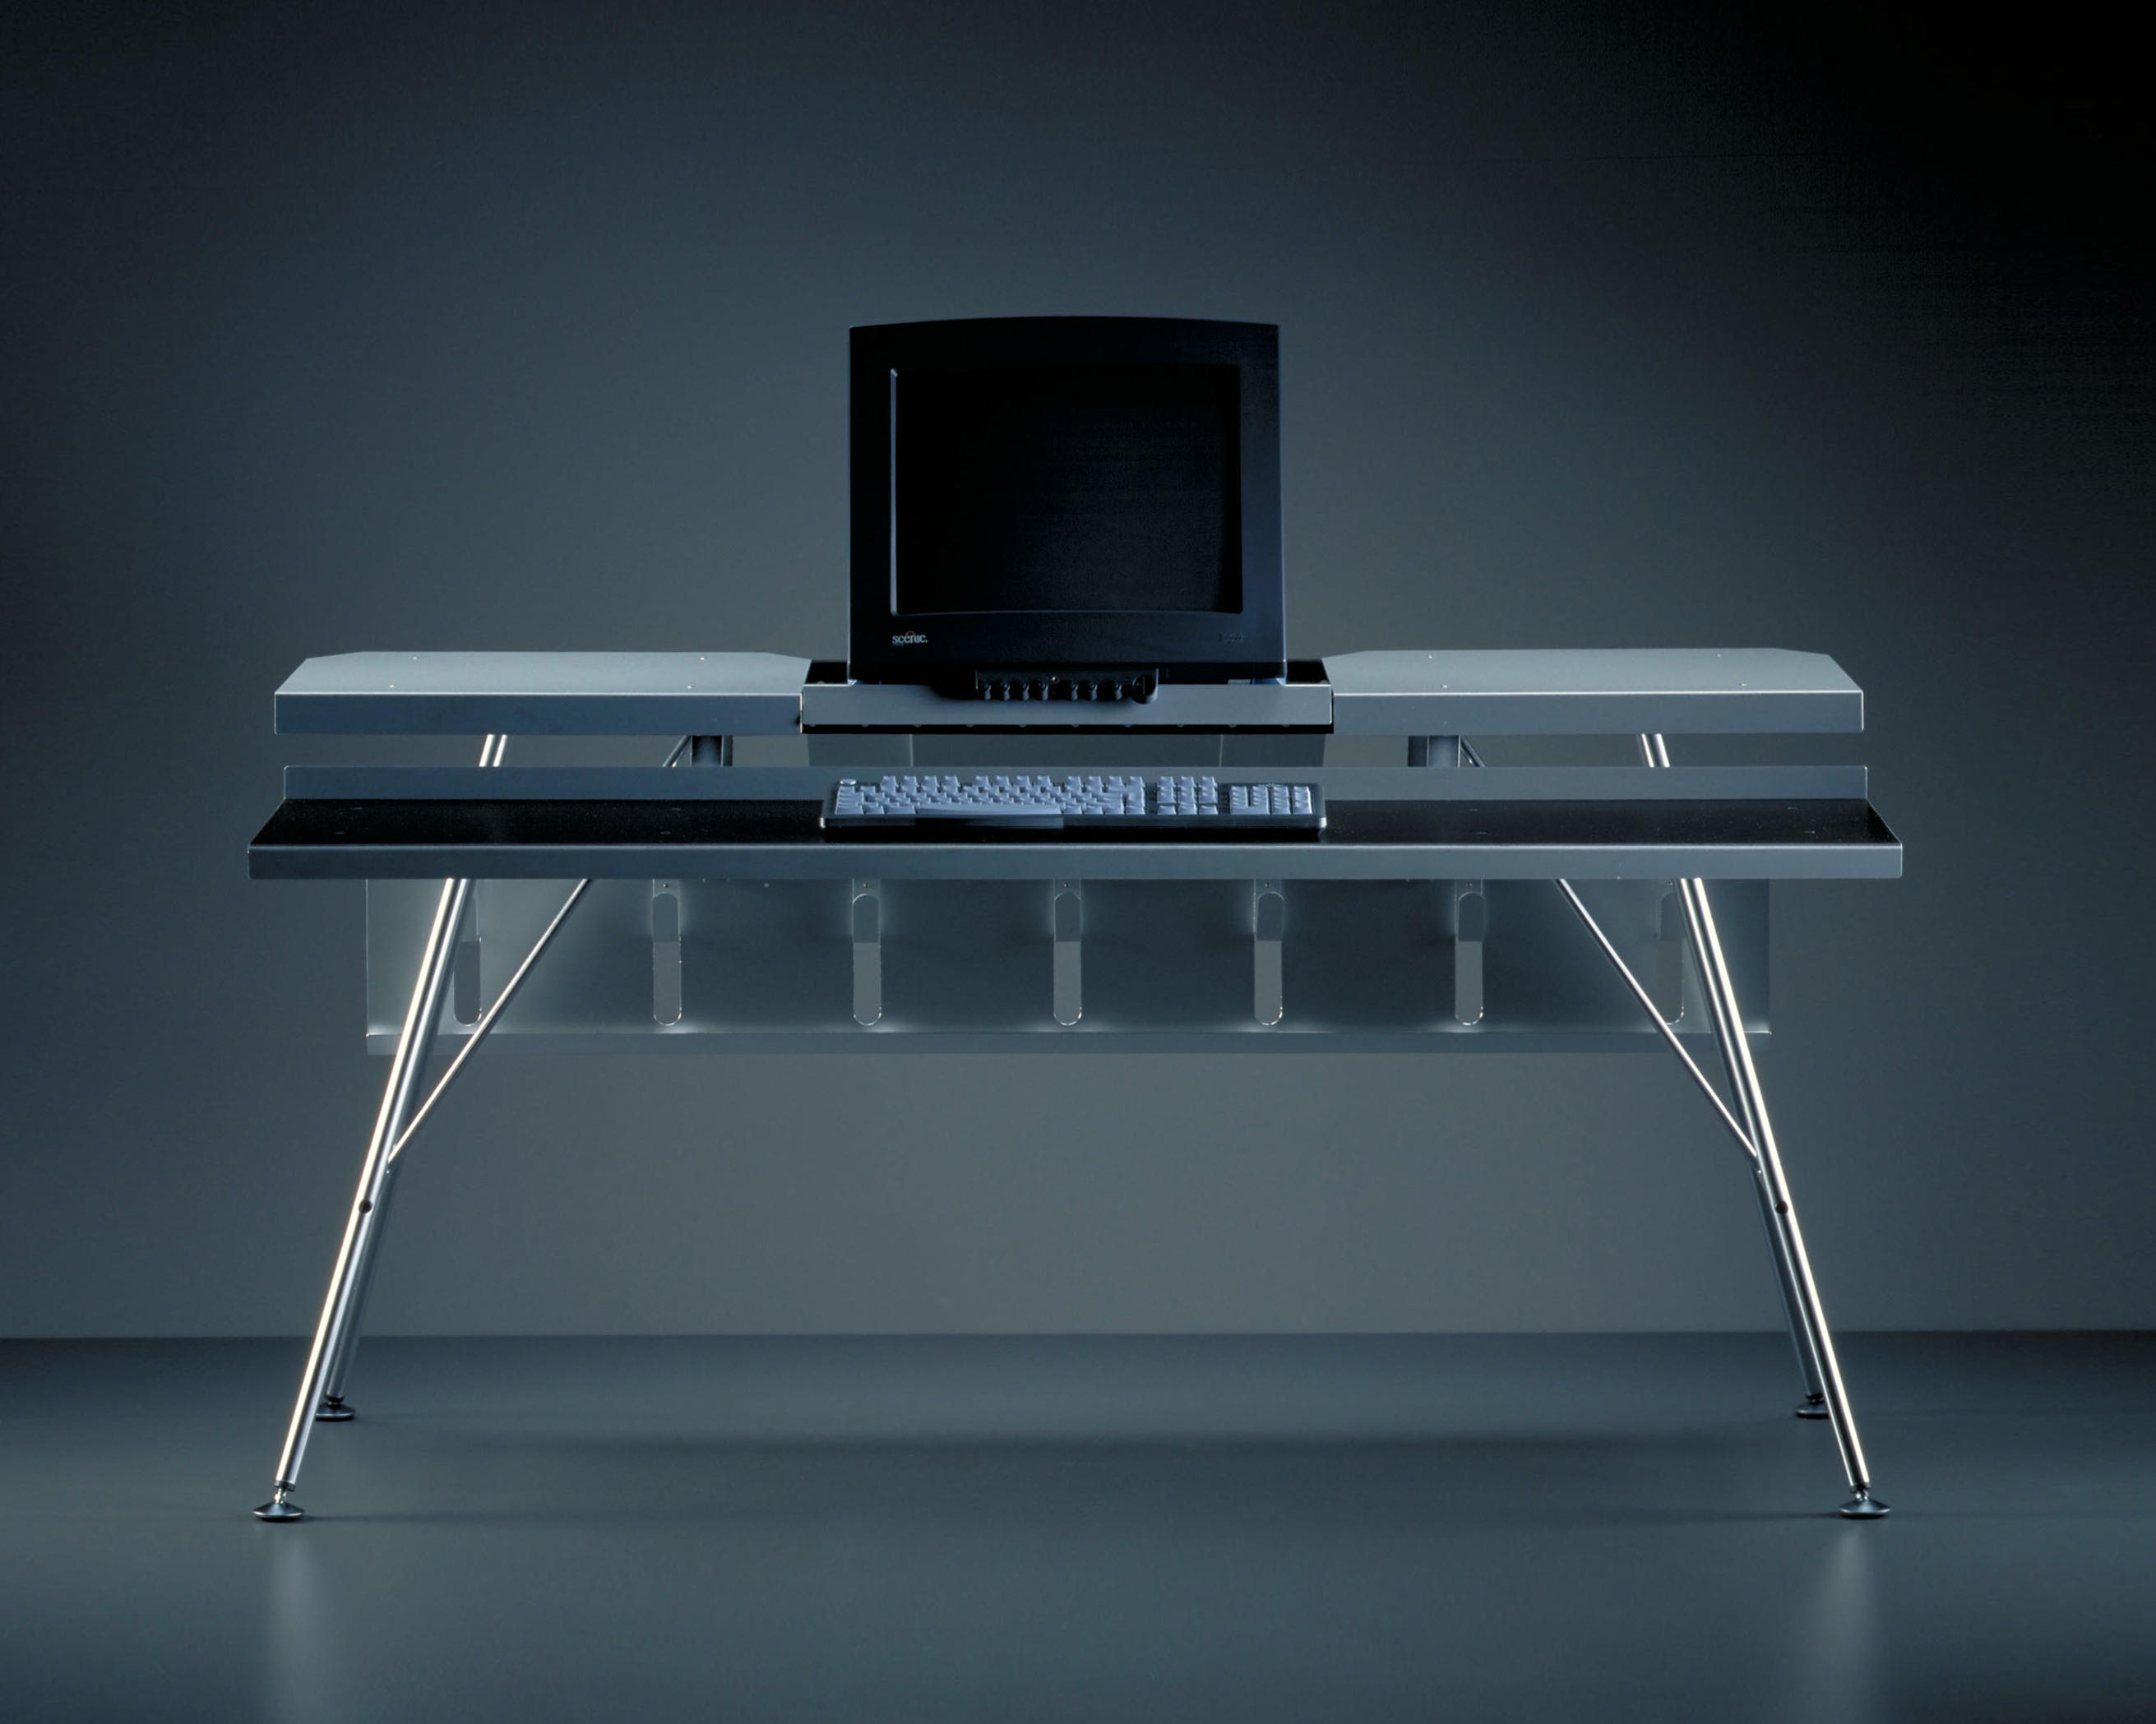 unicomputertisch computer desks from atelier alinea architonic. Black Bedroom Furniture Sets. Home Design Ideas